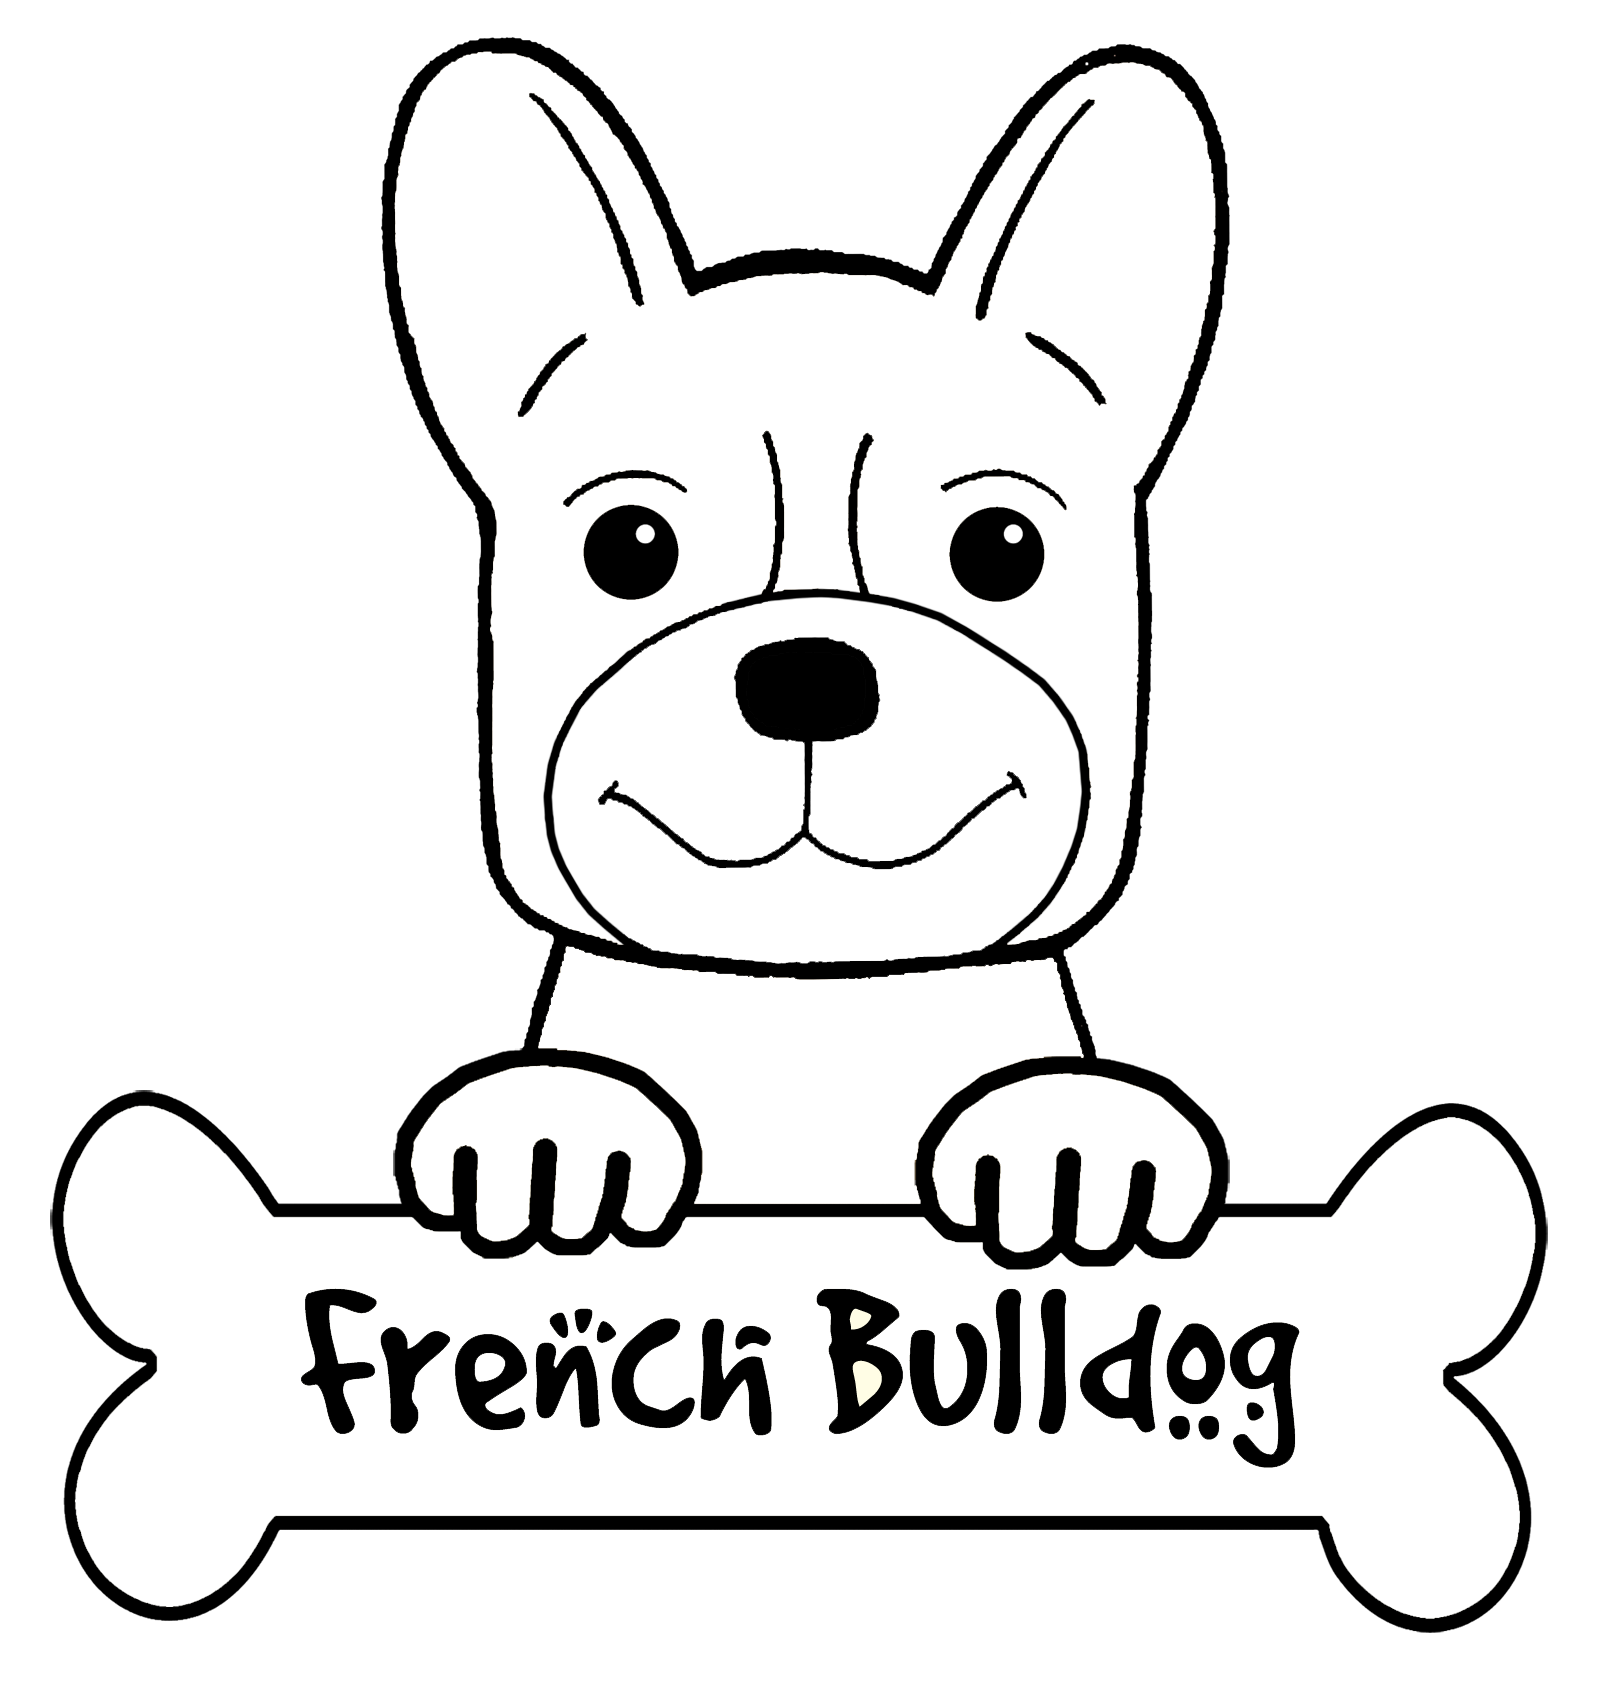 french christmas coloring sheets global dining challenge for kids france french coloring sheets christmas